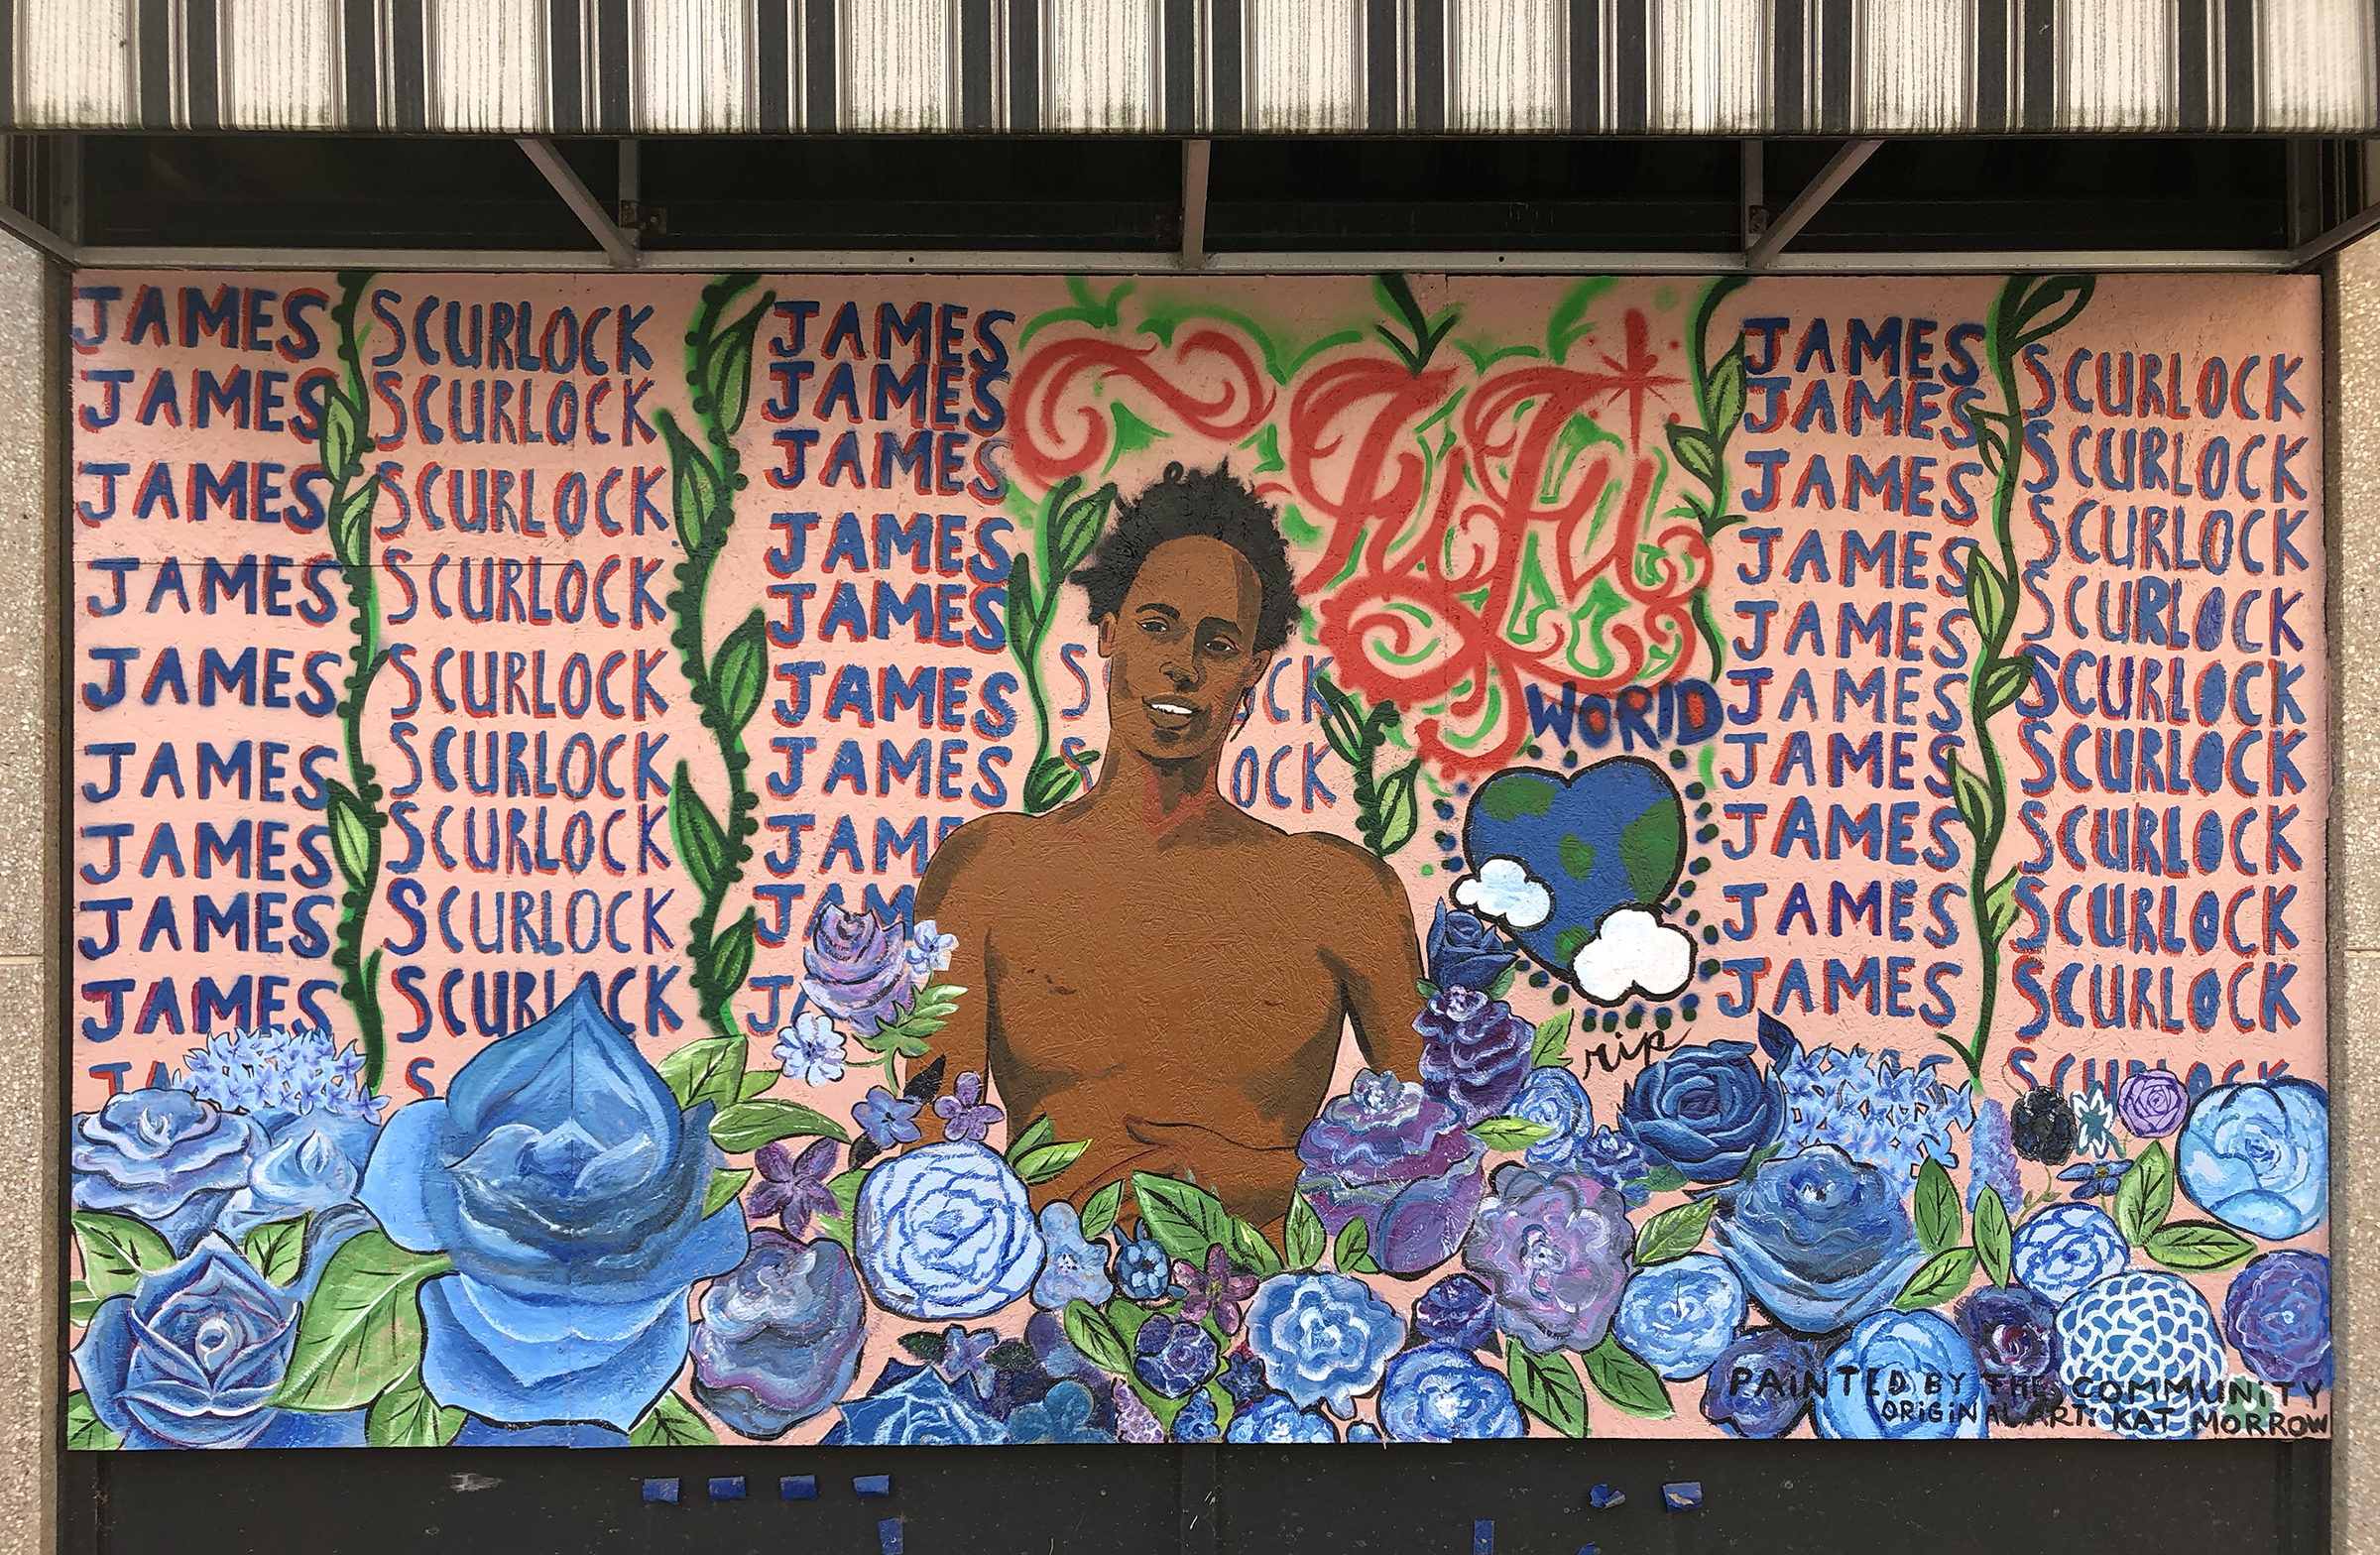 A mural painted on a boarded-up window of Culprit Cafe at 16th and Farnam streets in Omaha shows an illustration by Kat Morrow depicting James Scurlock surrounded by flowers and his name, Wednesday, Sept. 16, 2020. (Scott Stewart/Daily Record)